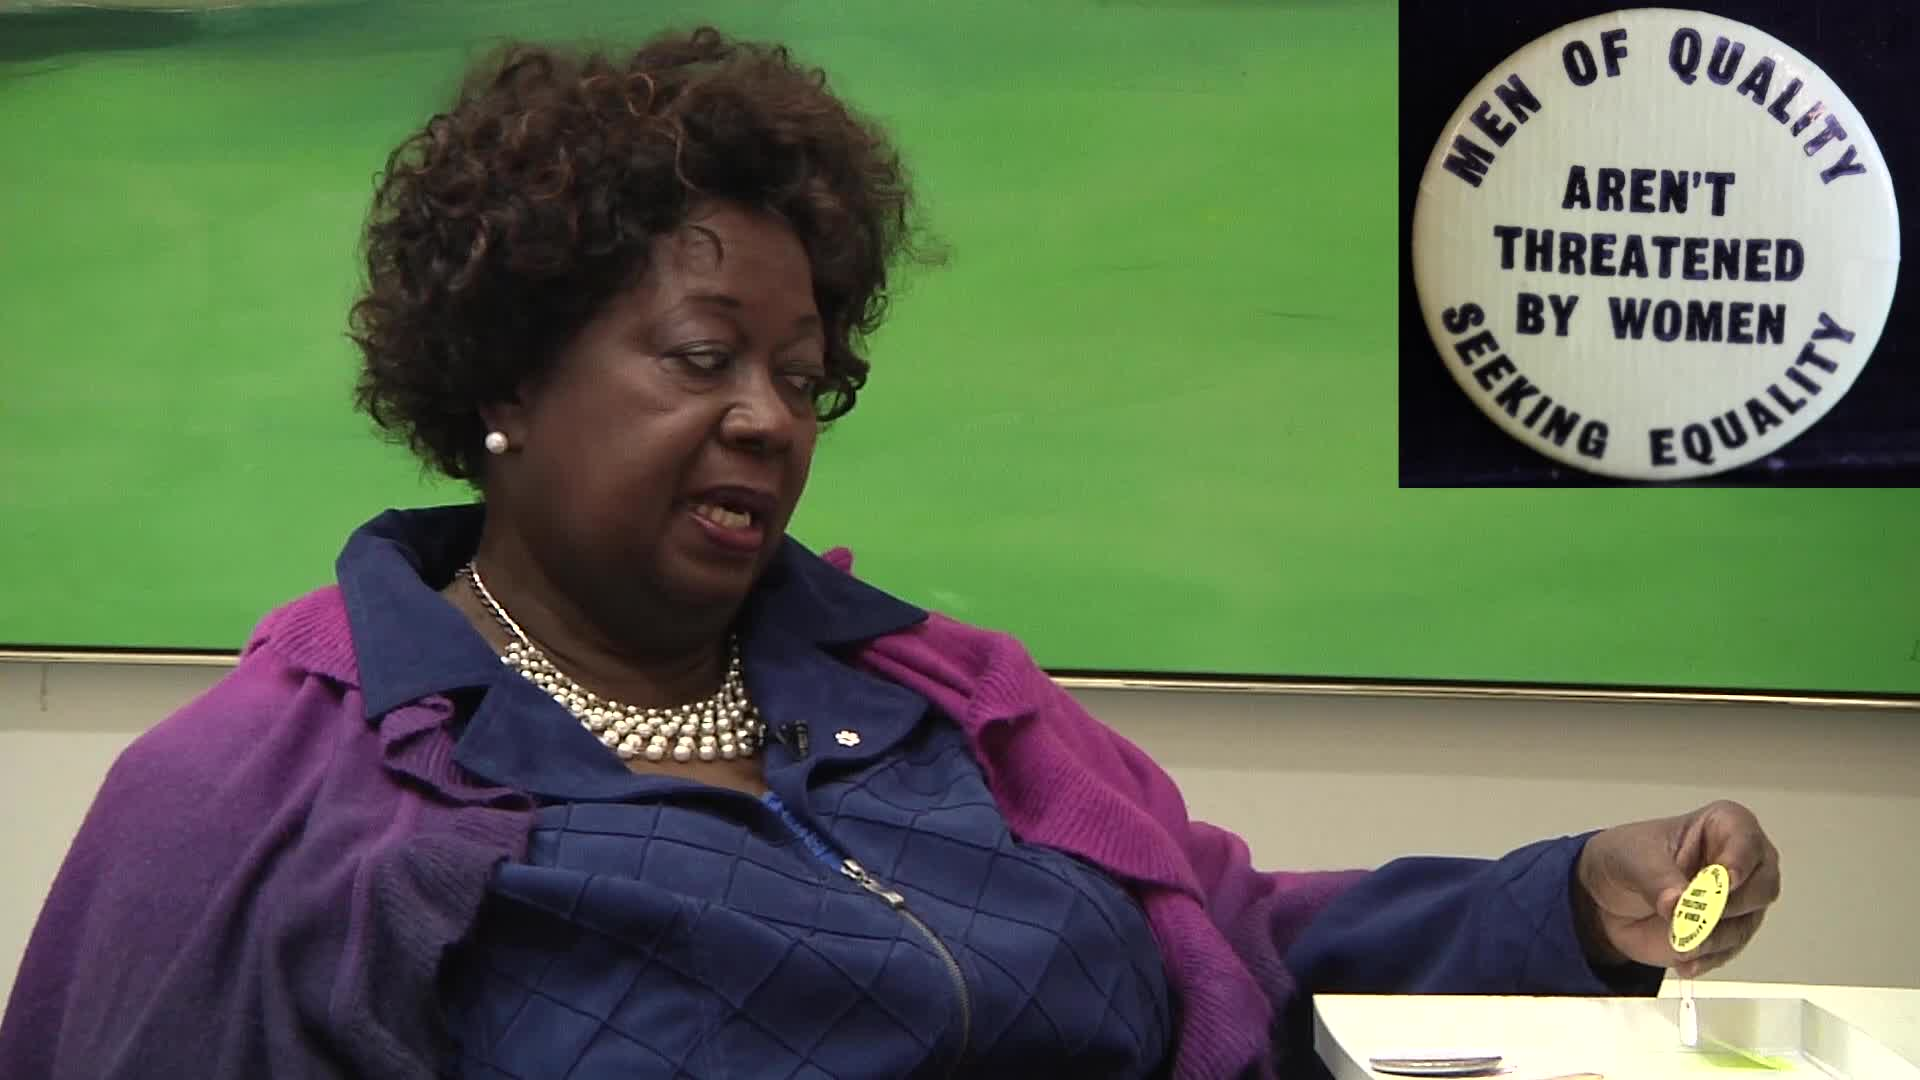 Jean Augustine interview: Men of quality aren't threatened by women seeking equality button